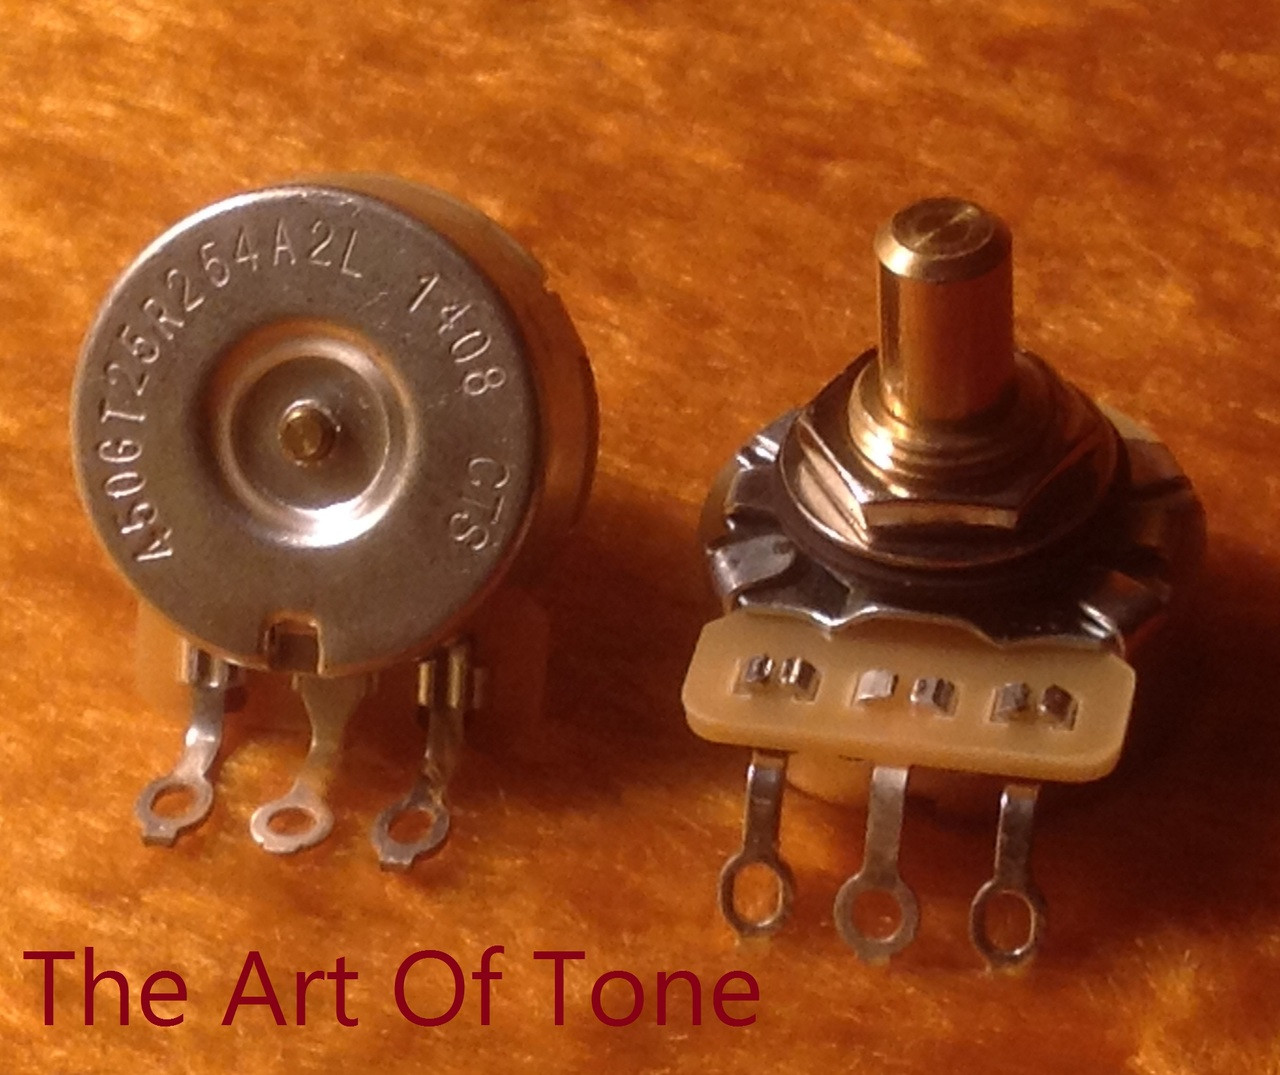 Basic Wiring Kit For Telecaster Guitars Gibson Les Paul High End Switch Spec Larger More Photos